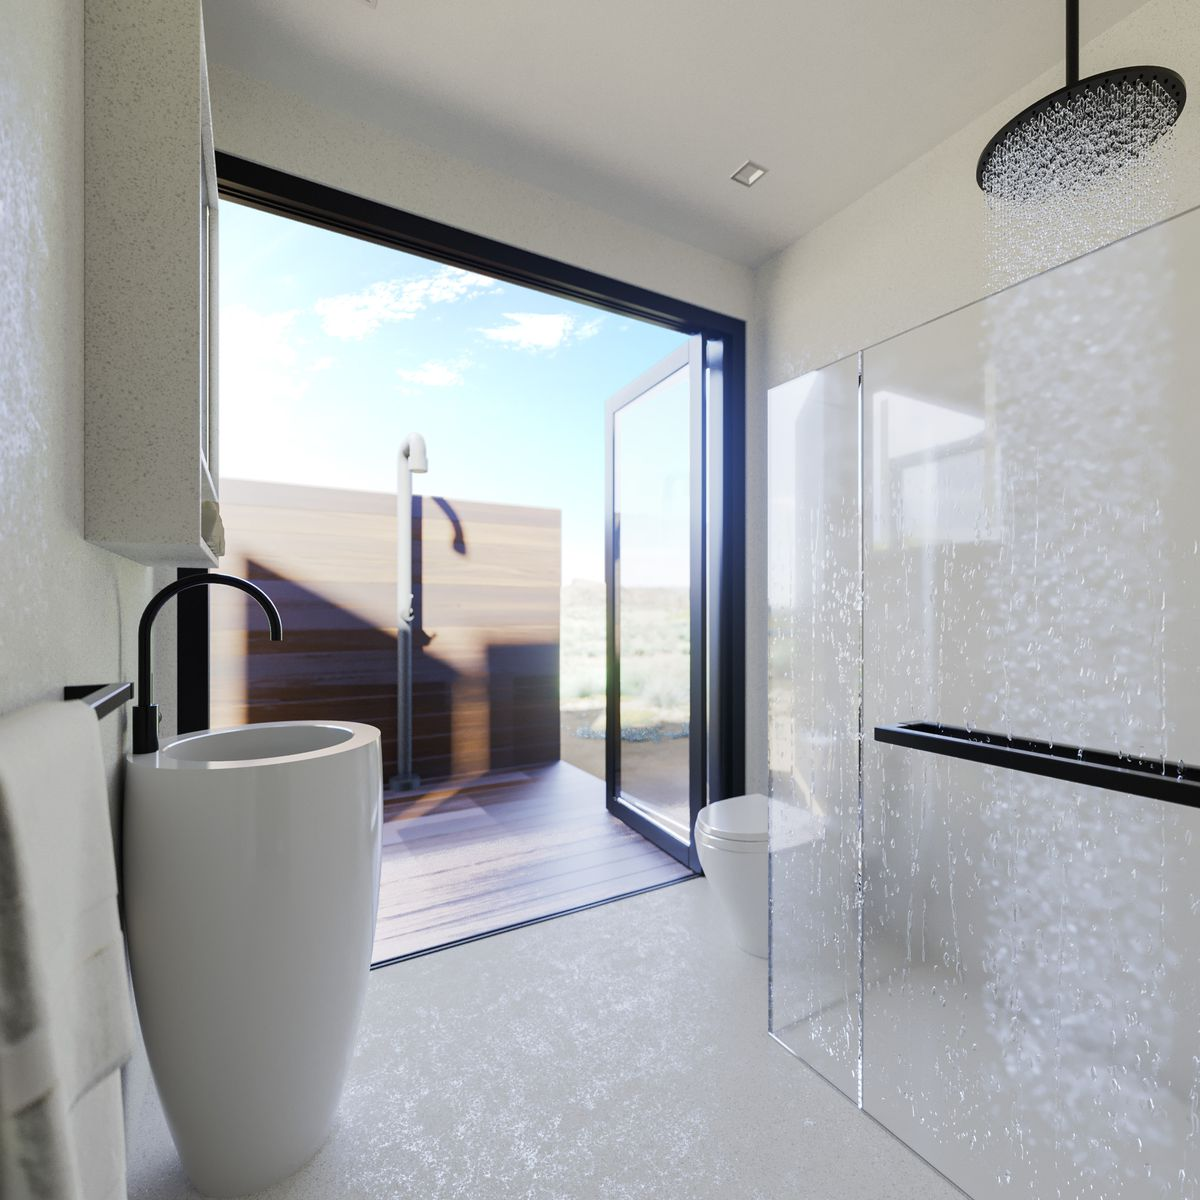 Waterfall shower in bathroom that opens to the outside.